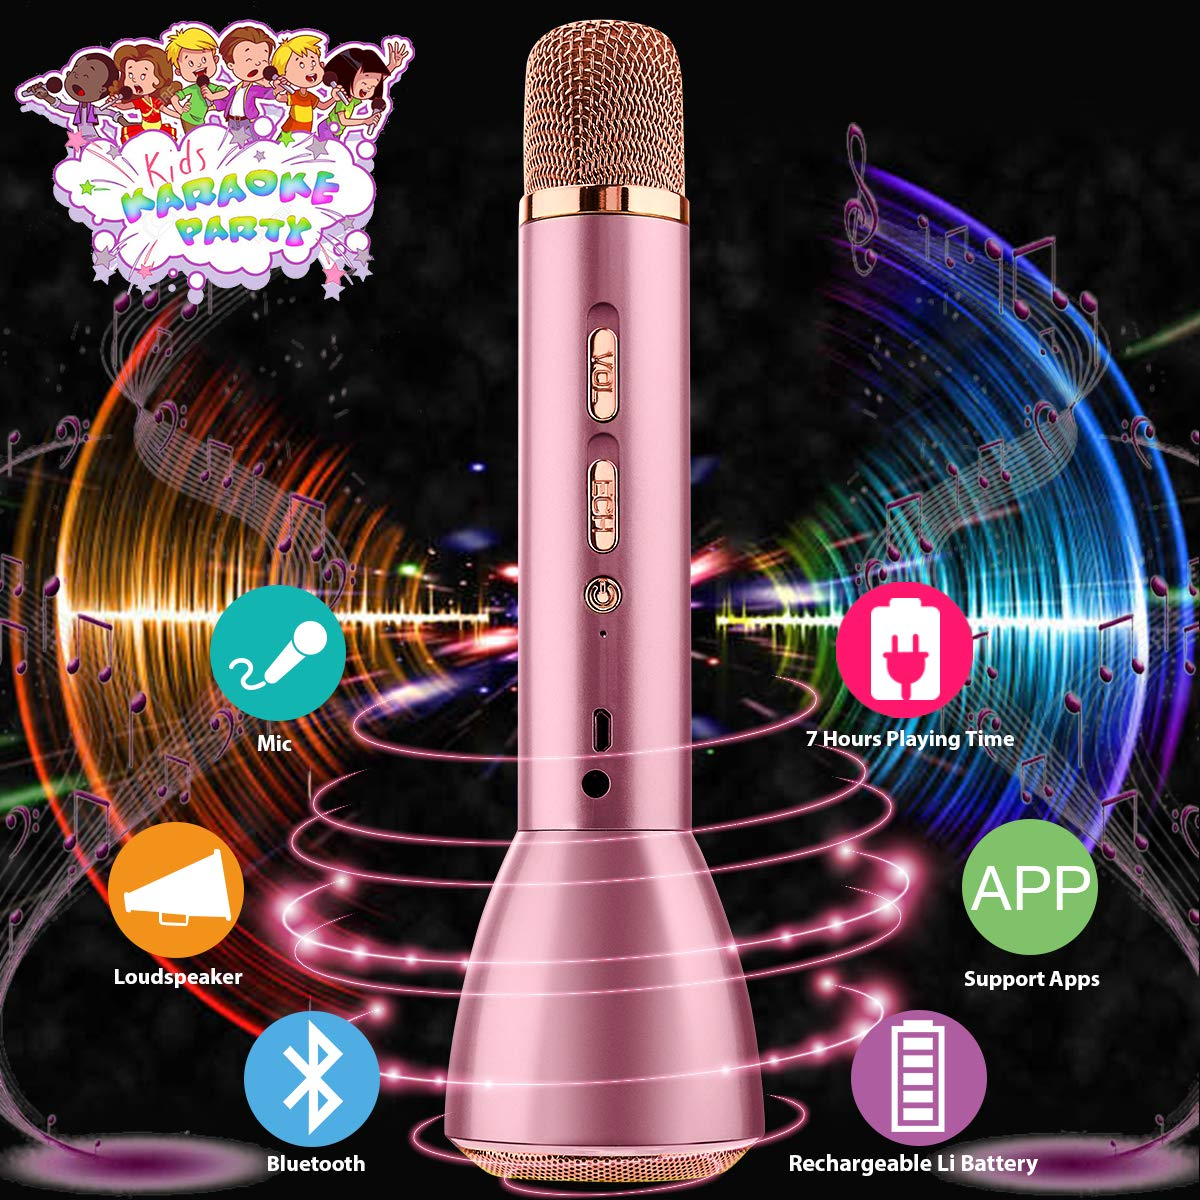 Karaoke Microphone for Kids, Kids Microphone Bluetooth With Speaker Wireless Echo Child Karaoke Mic Portable Cordless Singing Machine for Music Boys Girls Adult Party Gift Andriod IOS Phones(Pink) by Pasobass